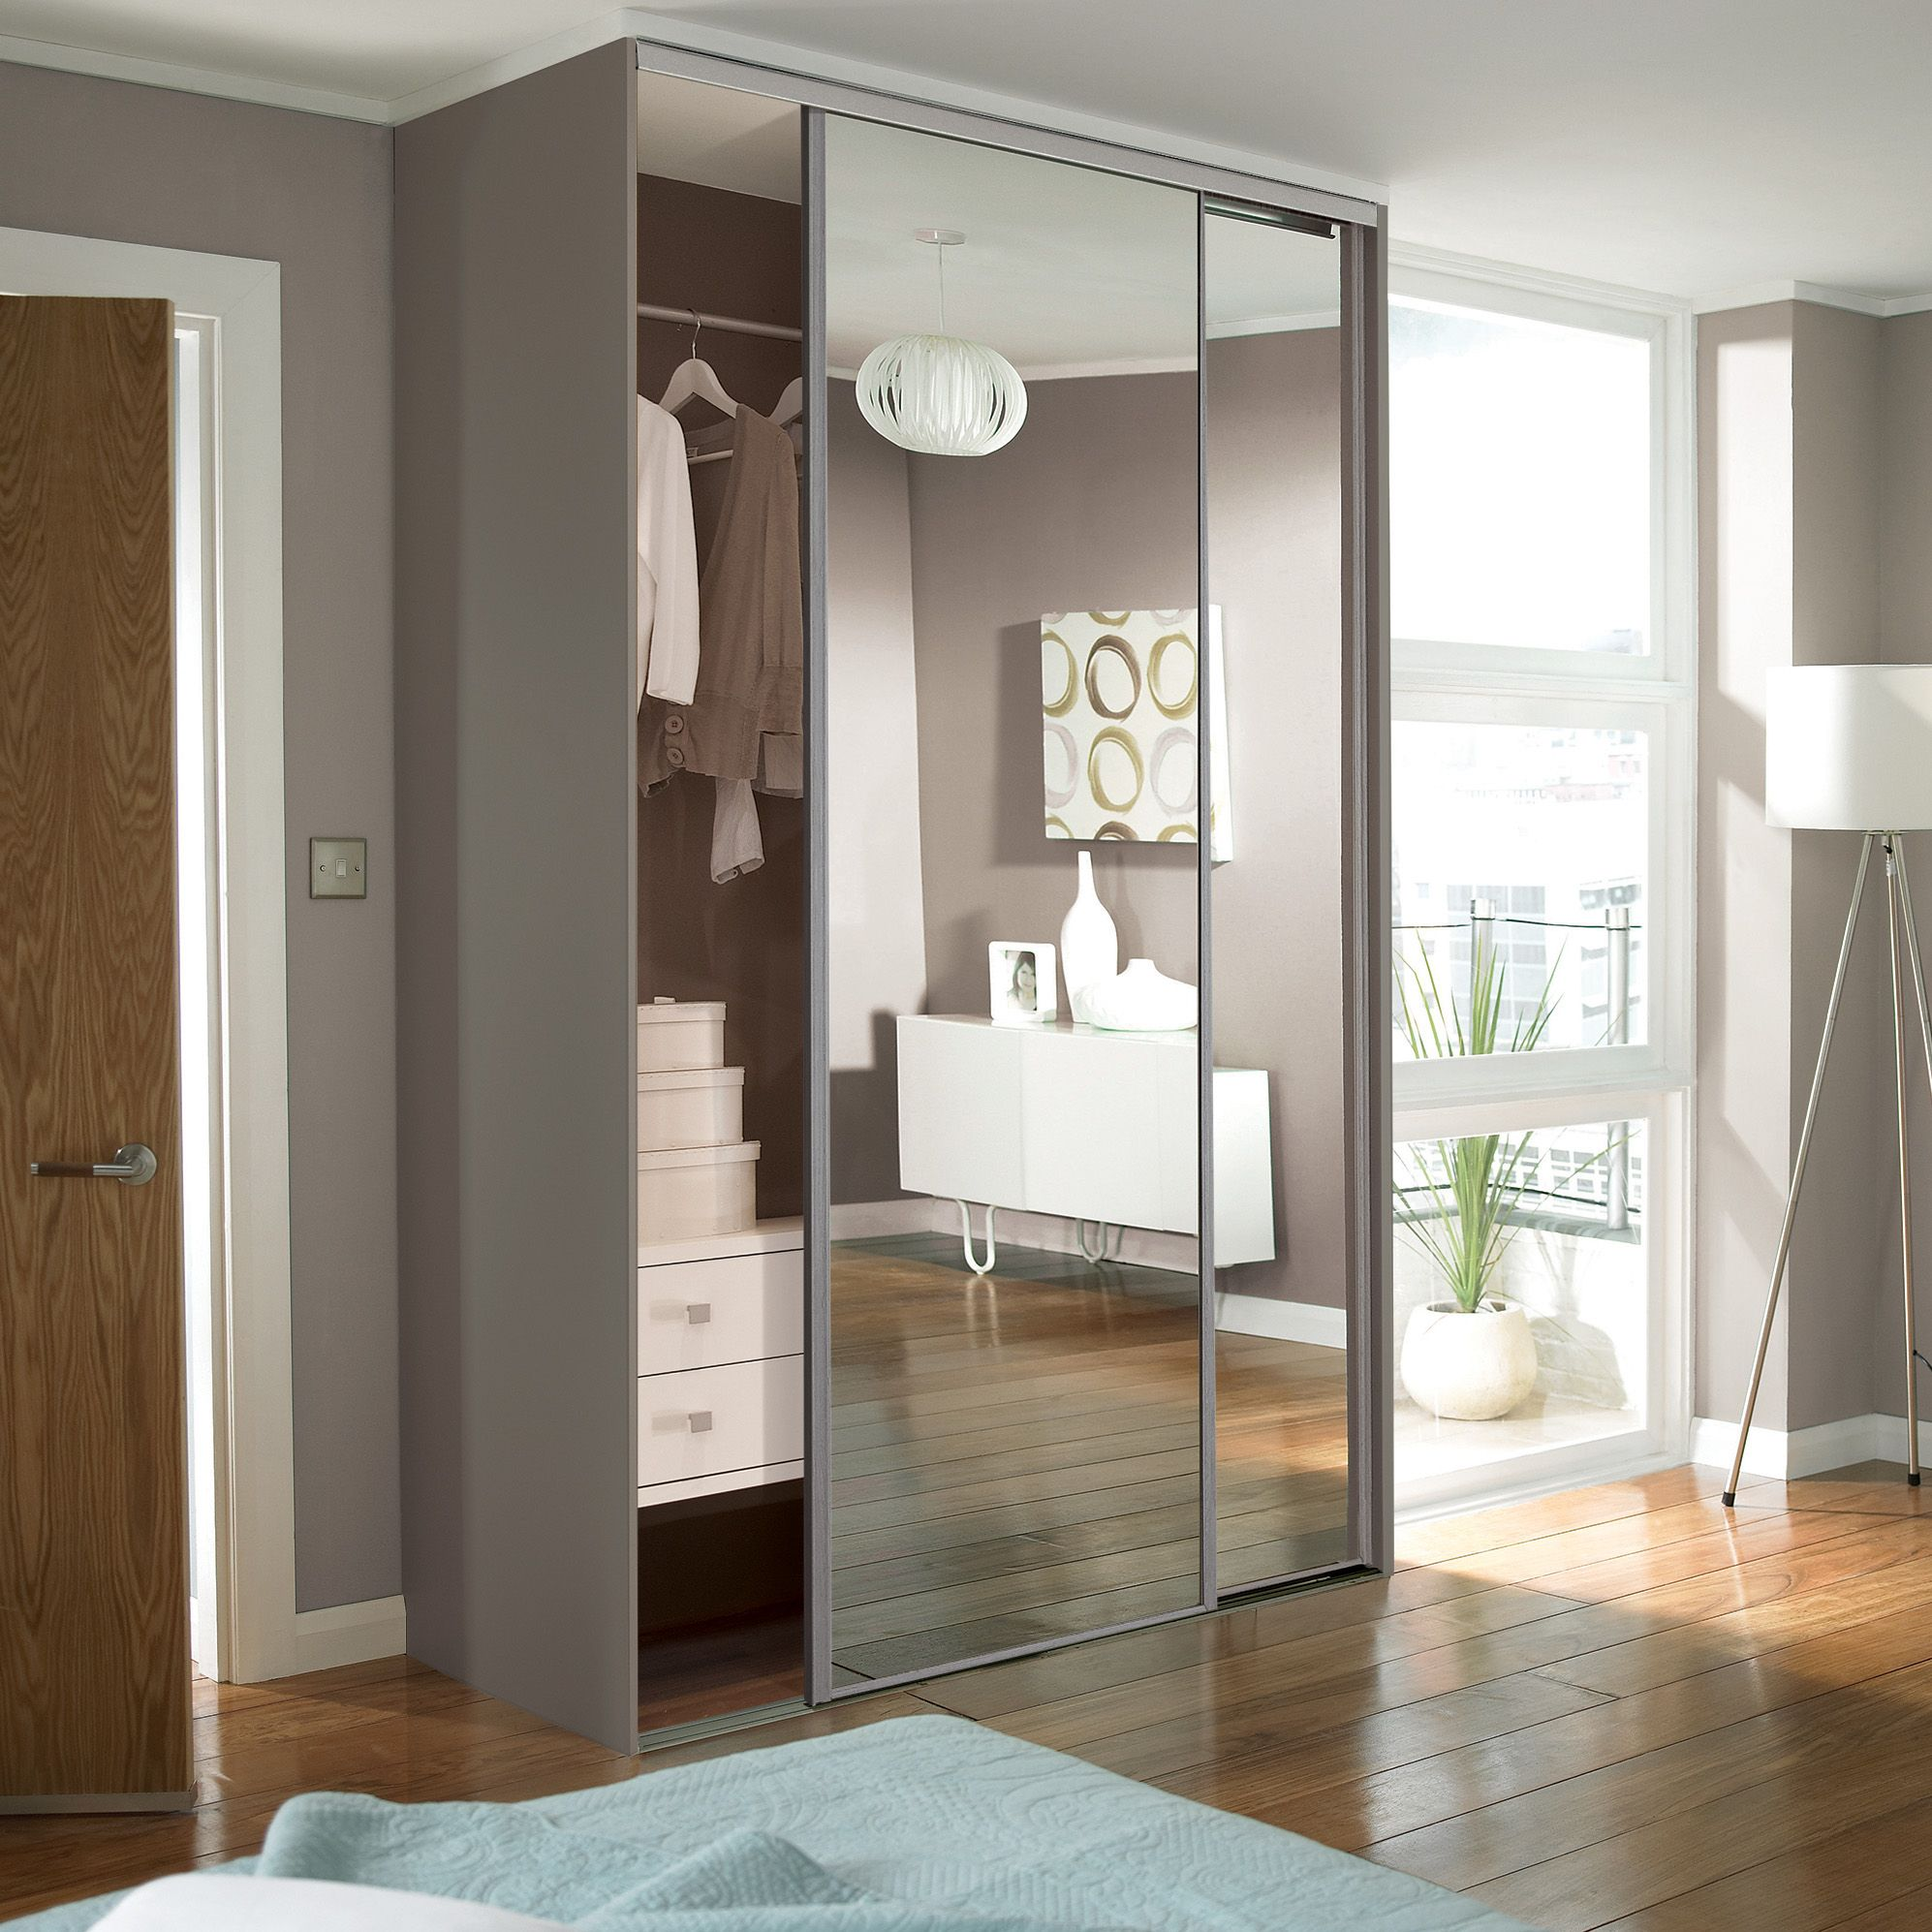 Mirrored stainless steel effect sliding wardrobe doors & Sliding wardrobe doors buying guide | Ideas u0026 Advice | DIY at Bu0026Q pezcame.com